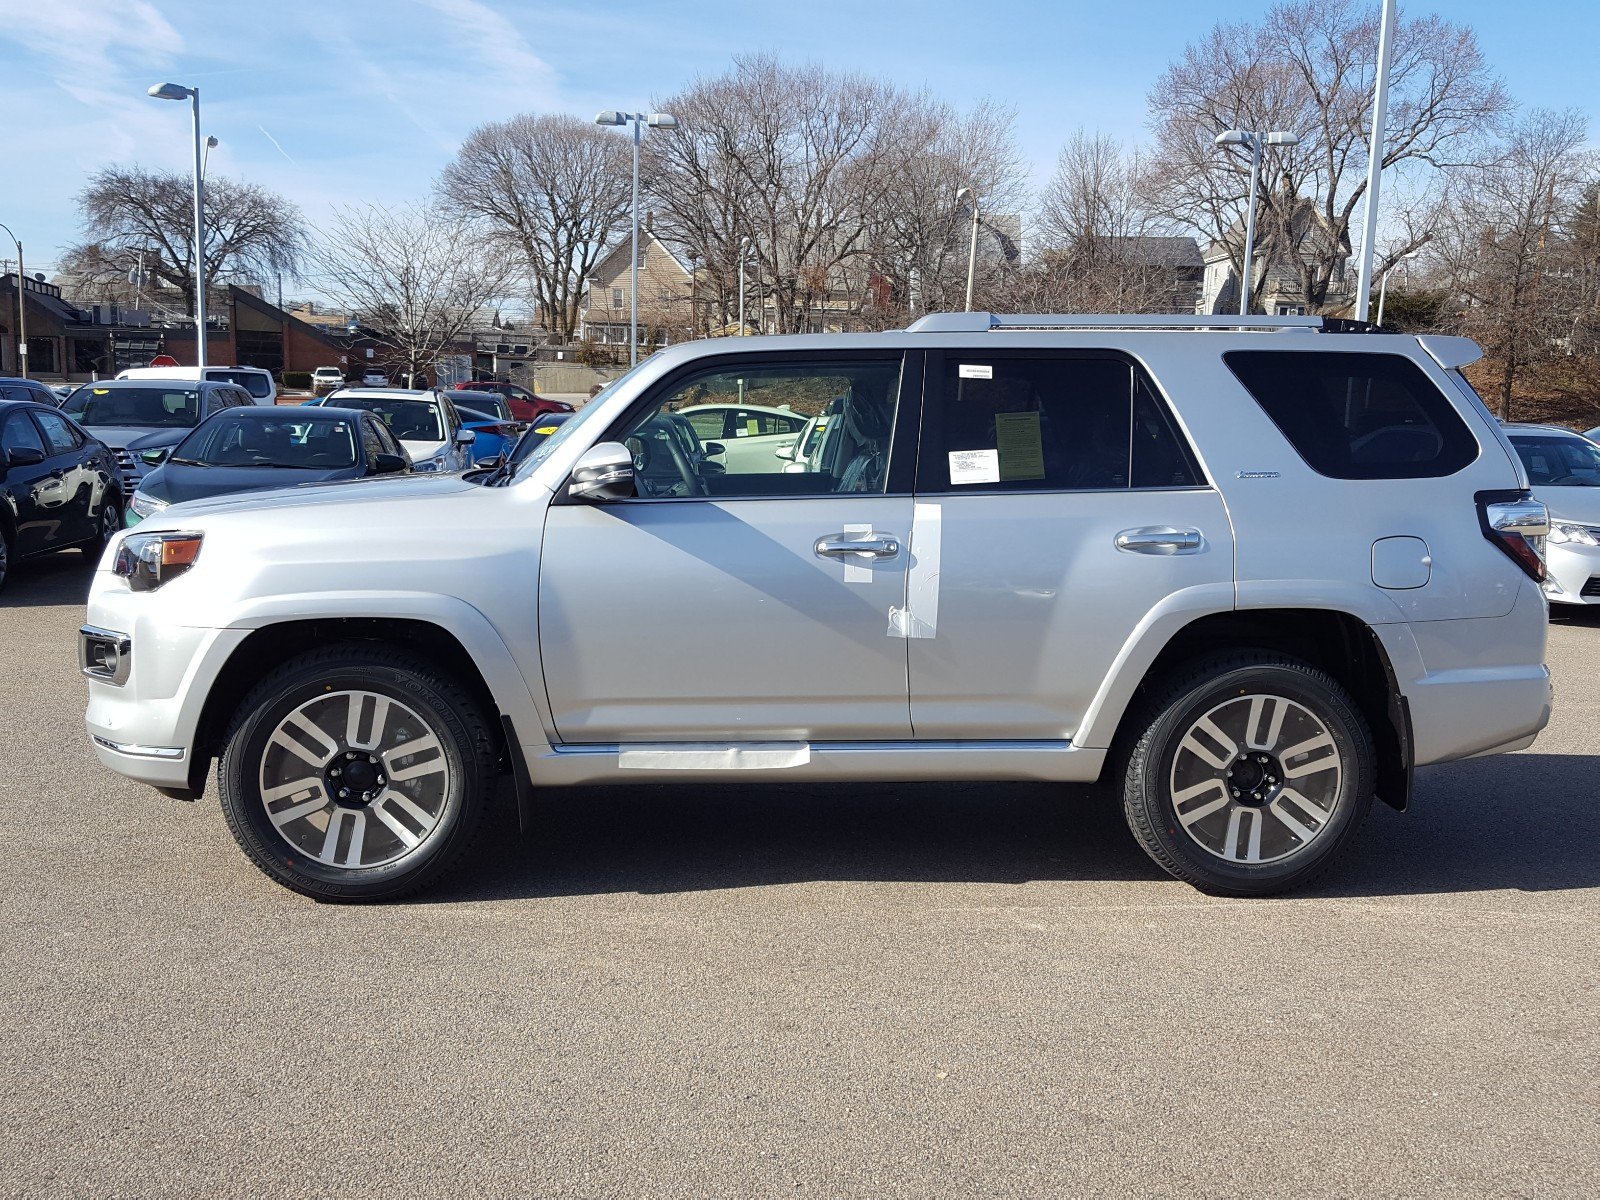 c2591179e190122d42a6e09103cfd402 Great Description About Used toyota 4runner for Sale